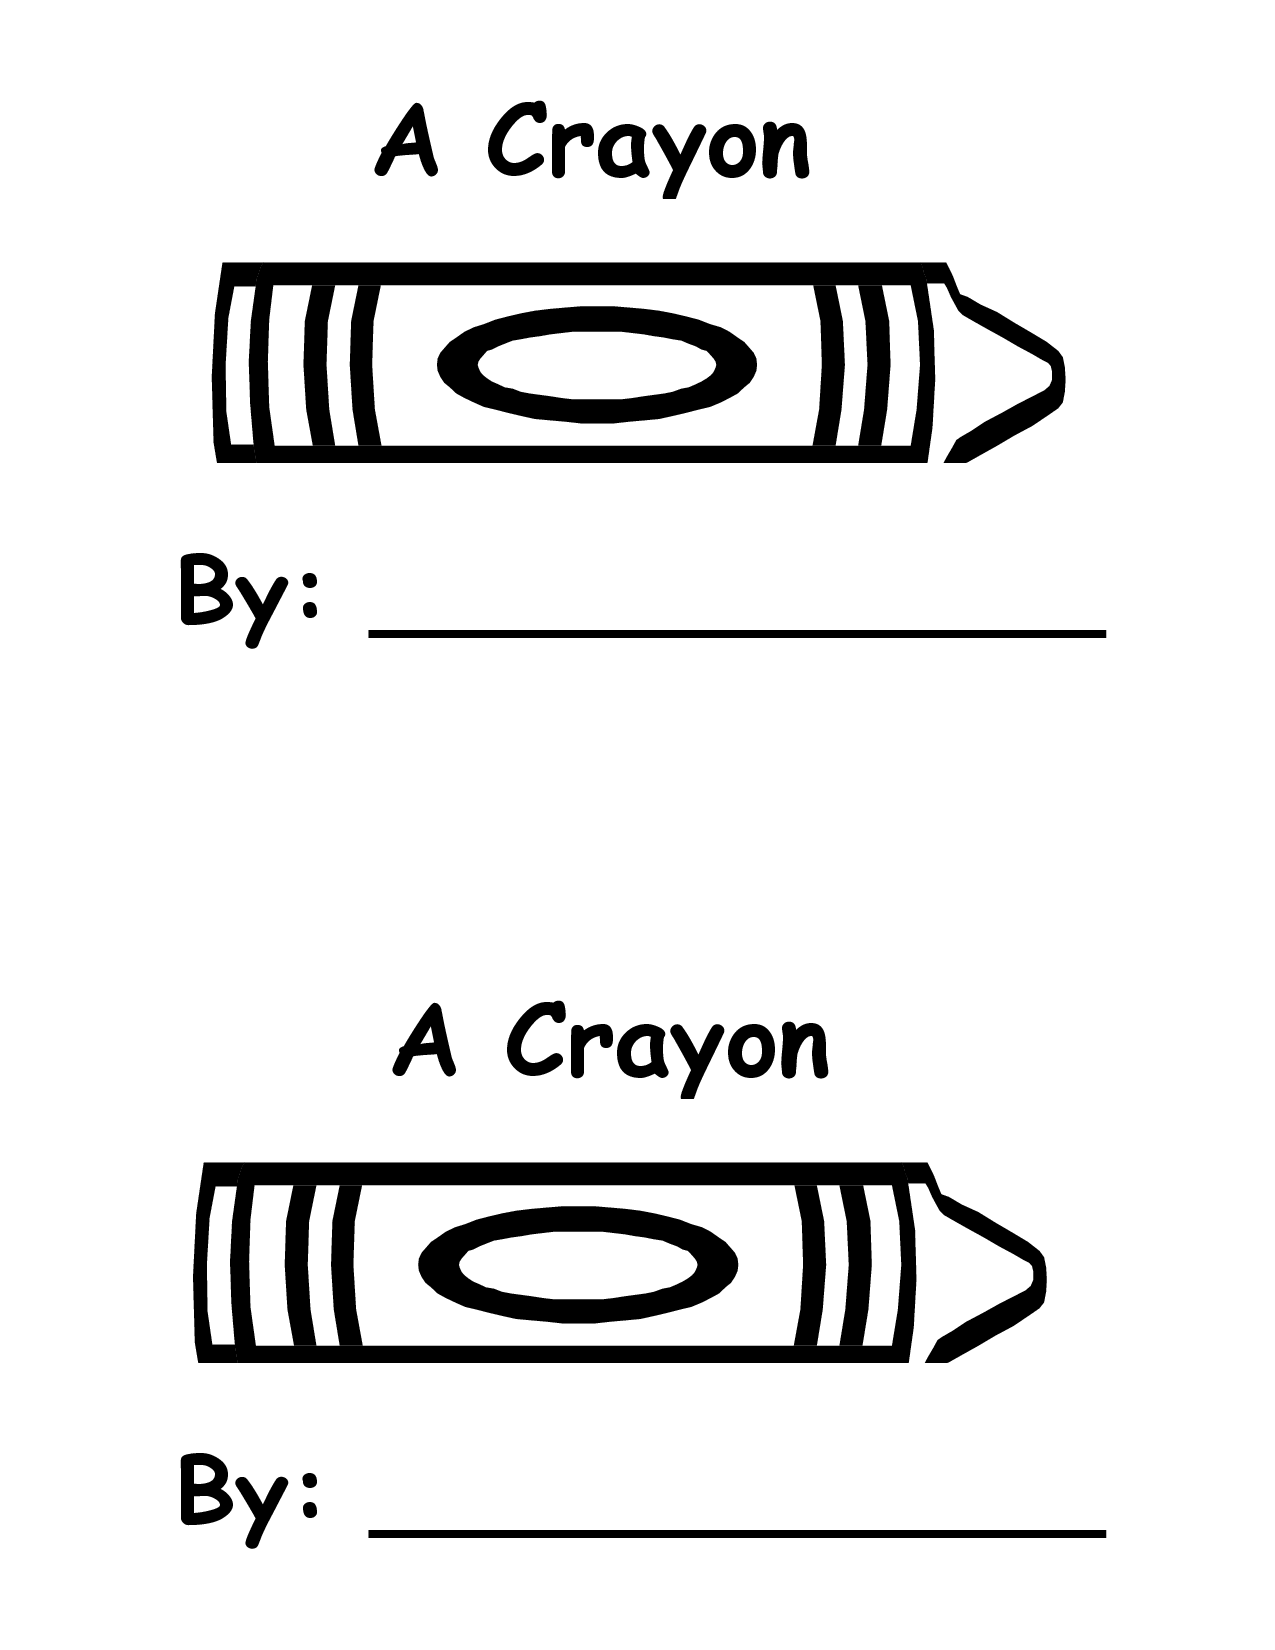 Crayola crayon outline crayon book template scrapbook for Crayon labels template